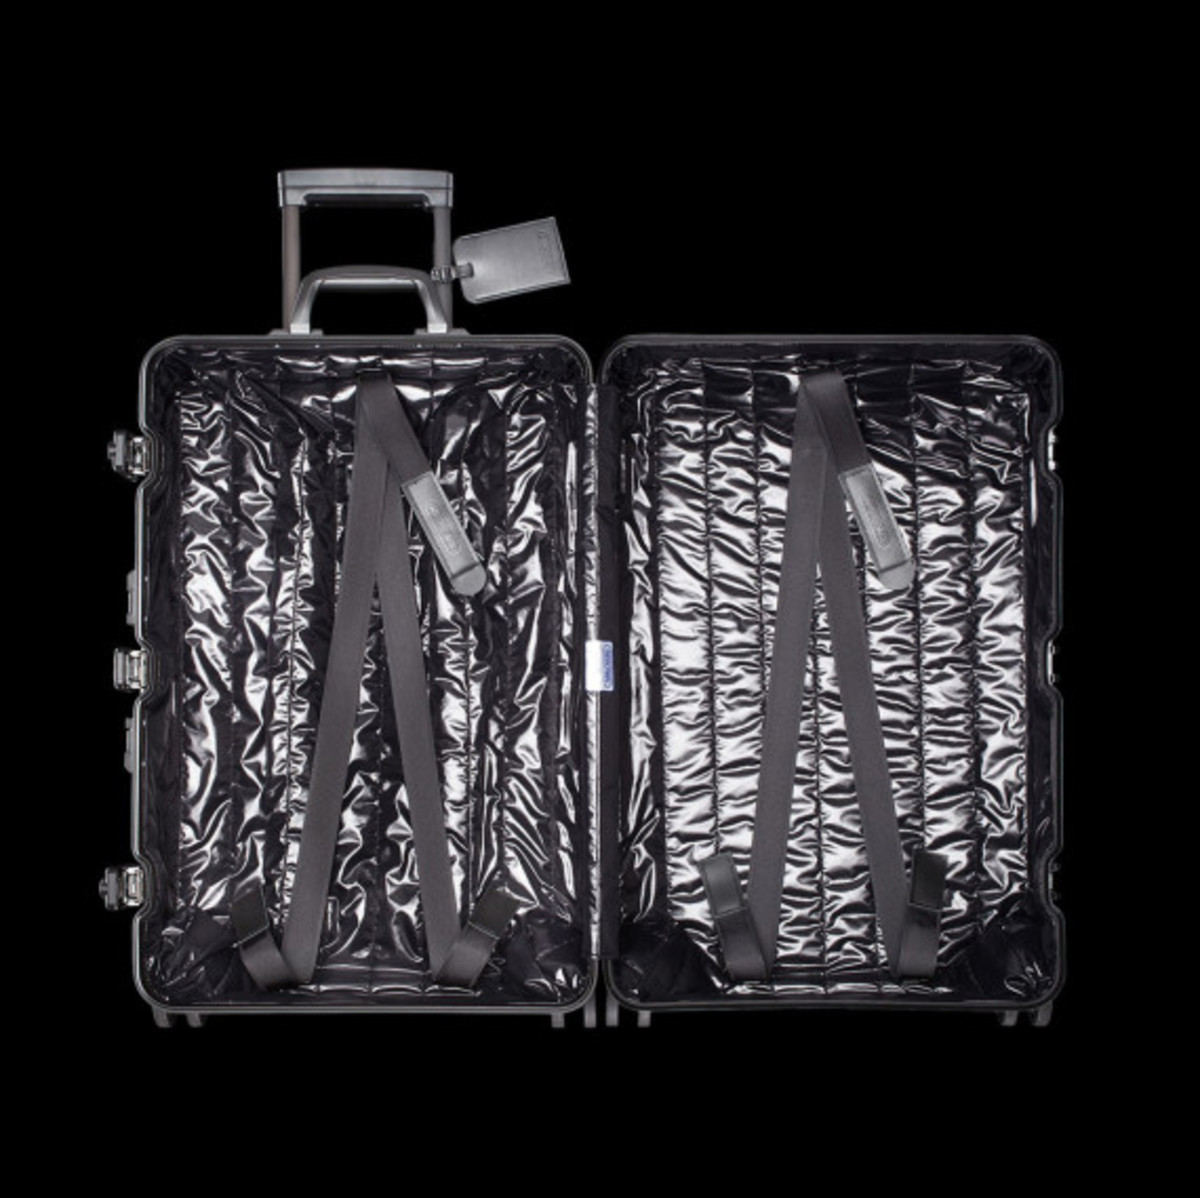 rimowa-and-moncler-luggage-collection-10